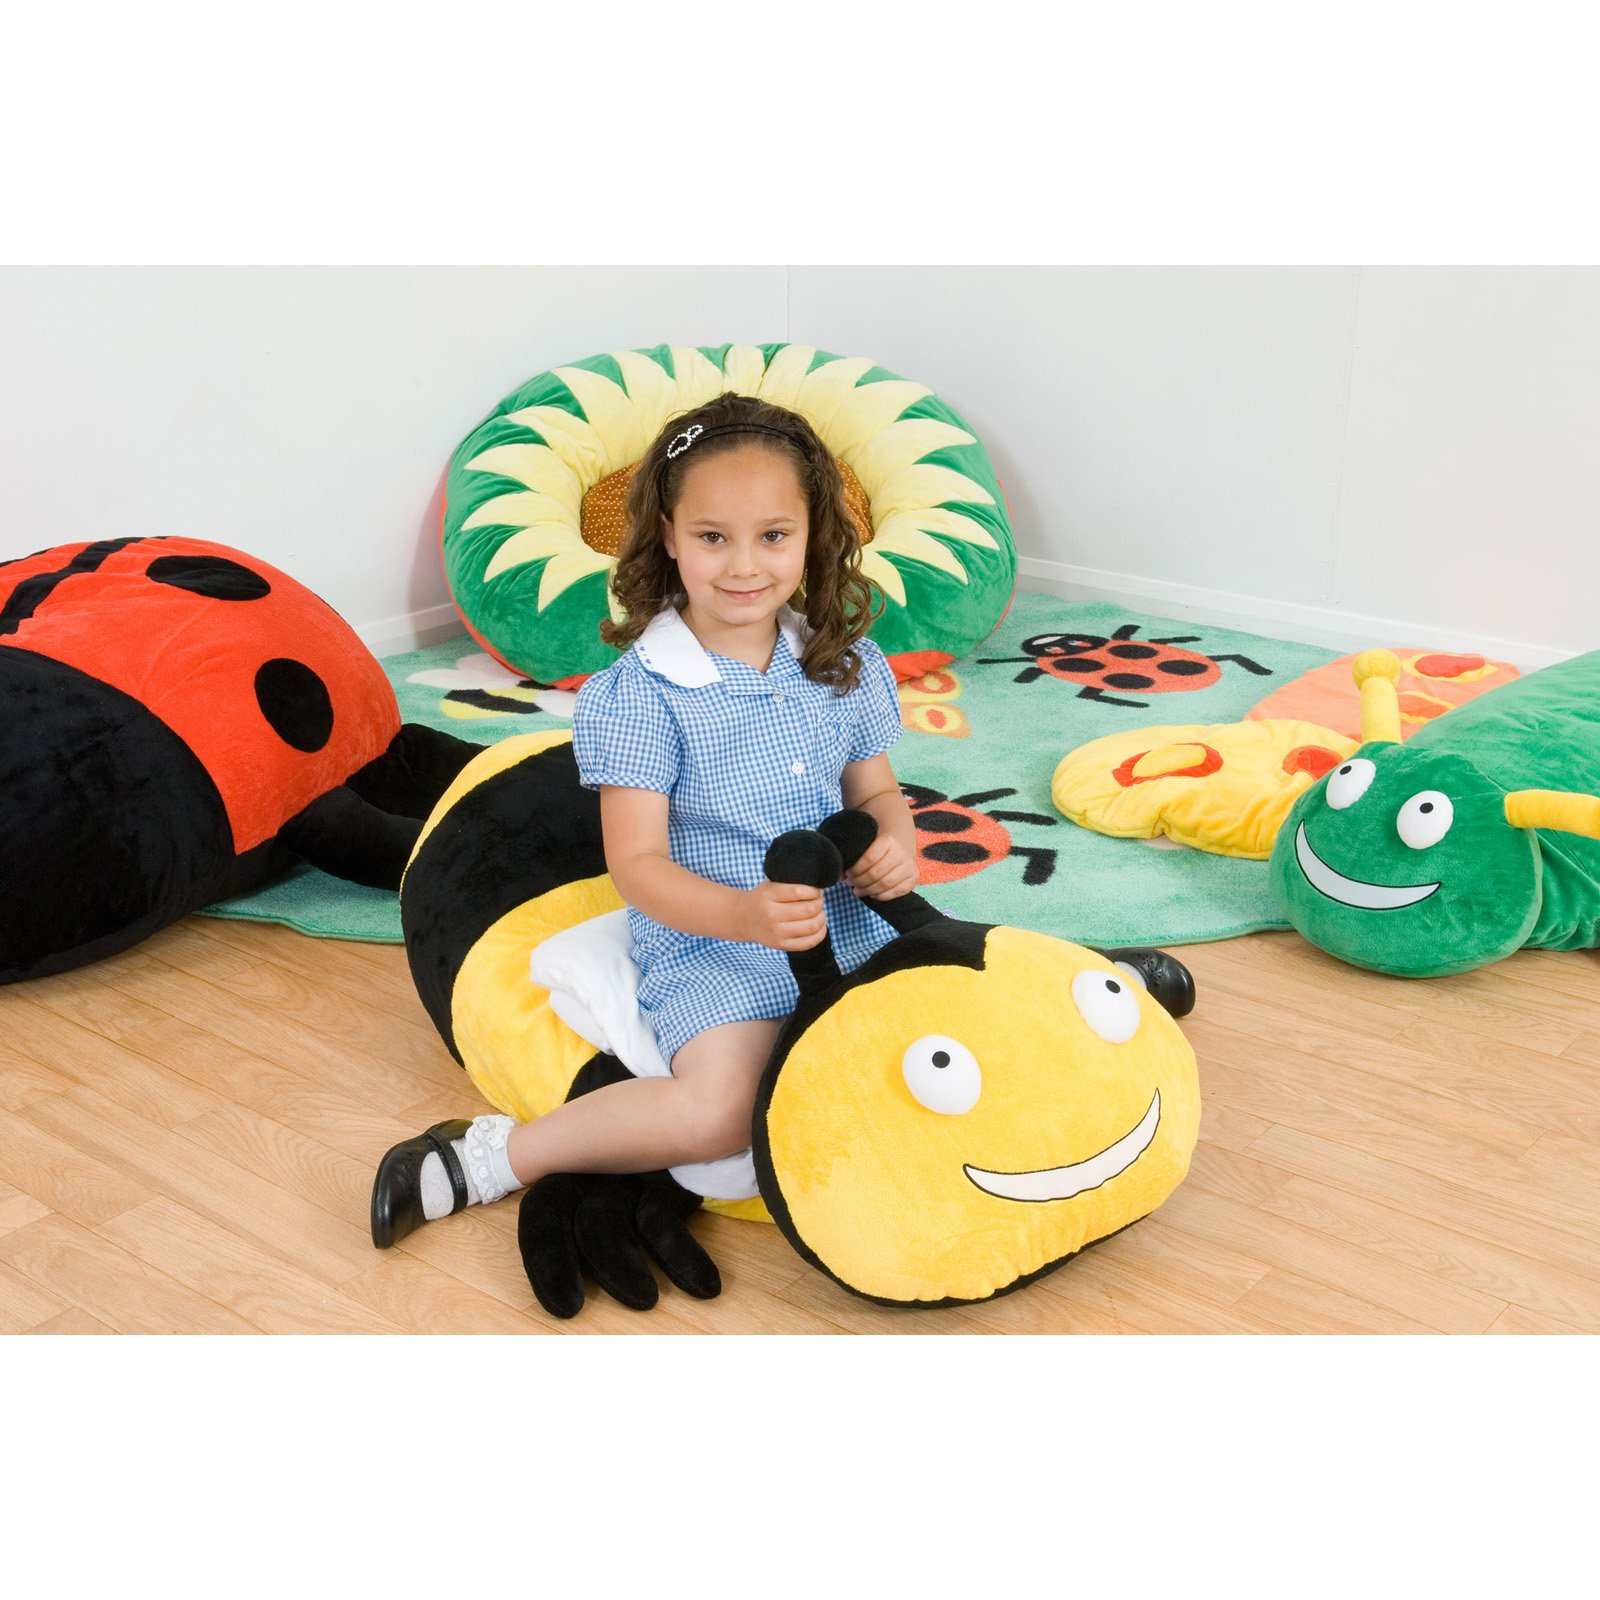 Kalokids Buzz Bumble Bee Giant Floor Cushion